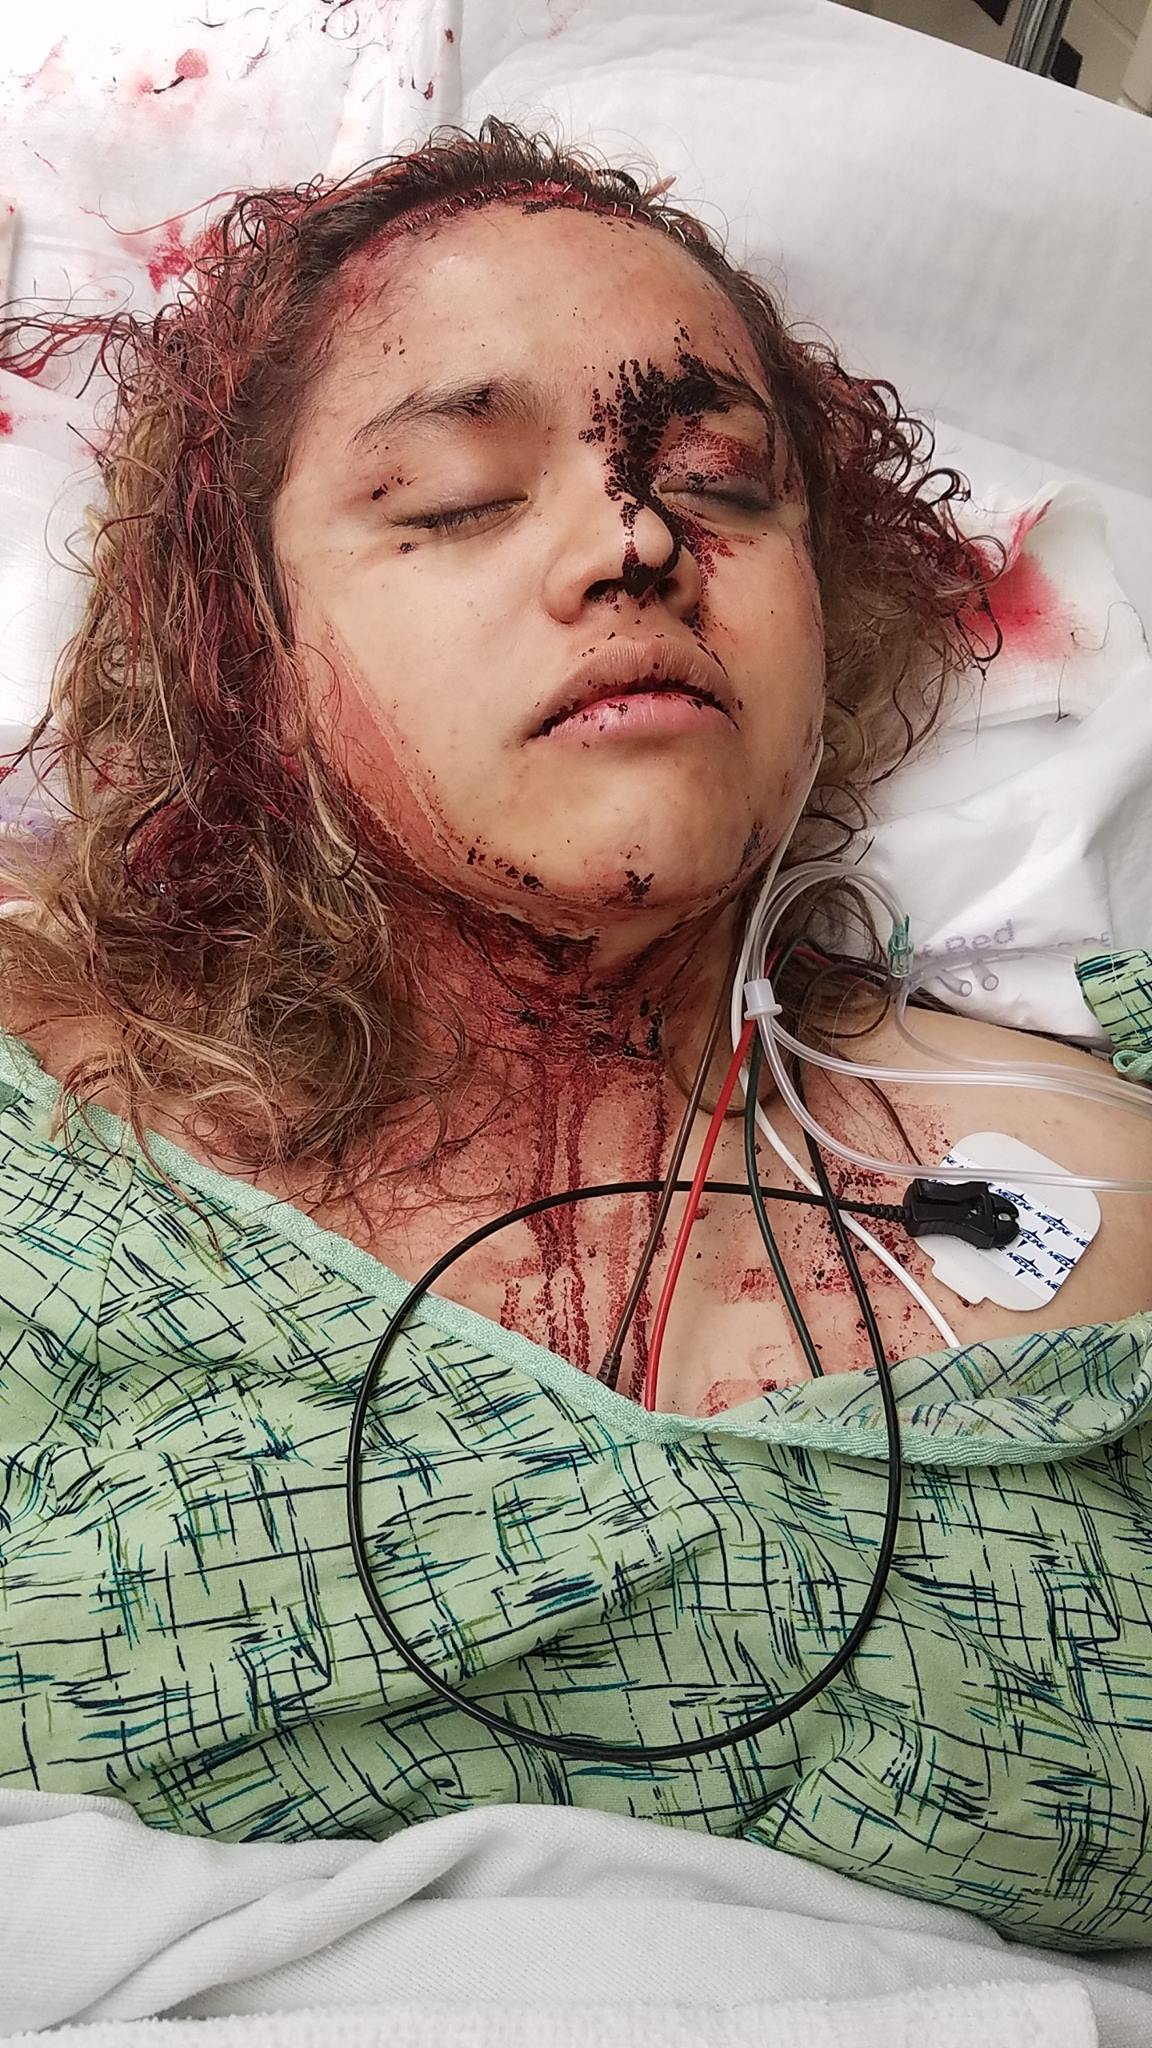 Texas Mom Shares Graphic Photos Of Daughter S Injuries As Police Continue Manhunt For Boyfriend San Antonio Express News